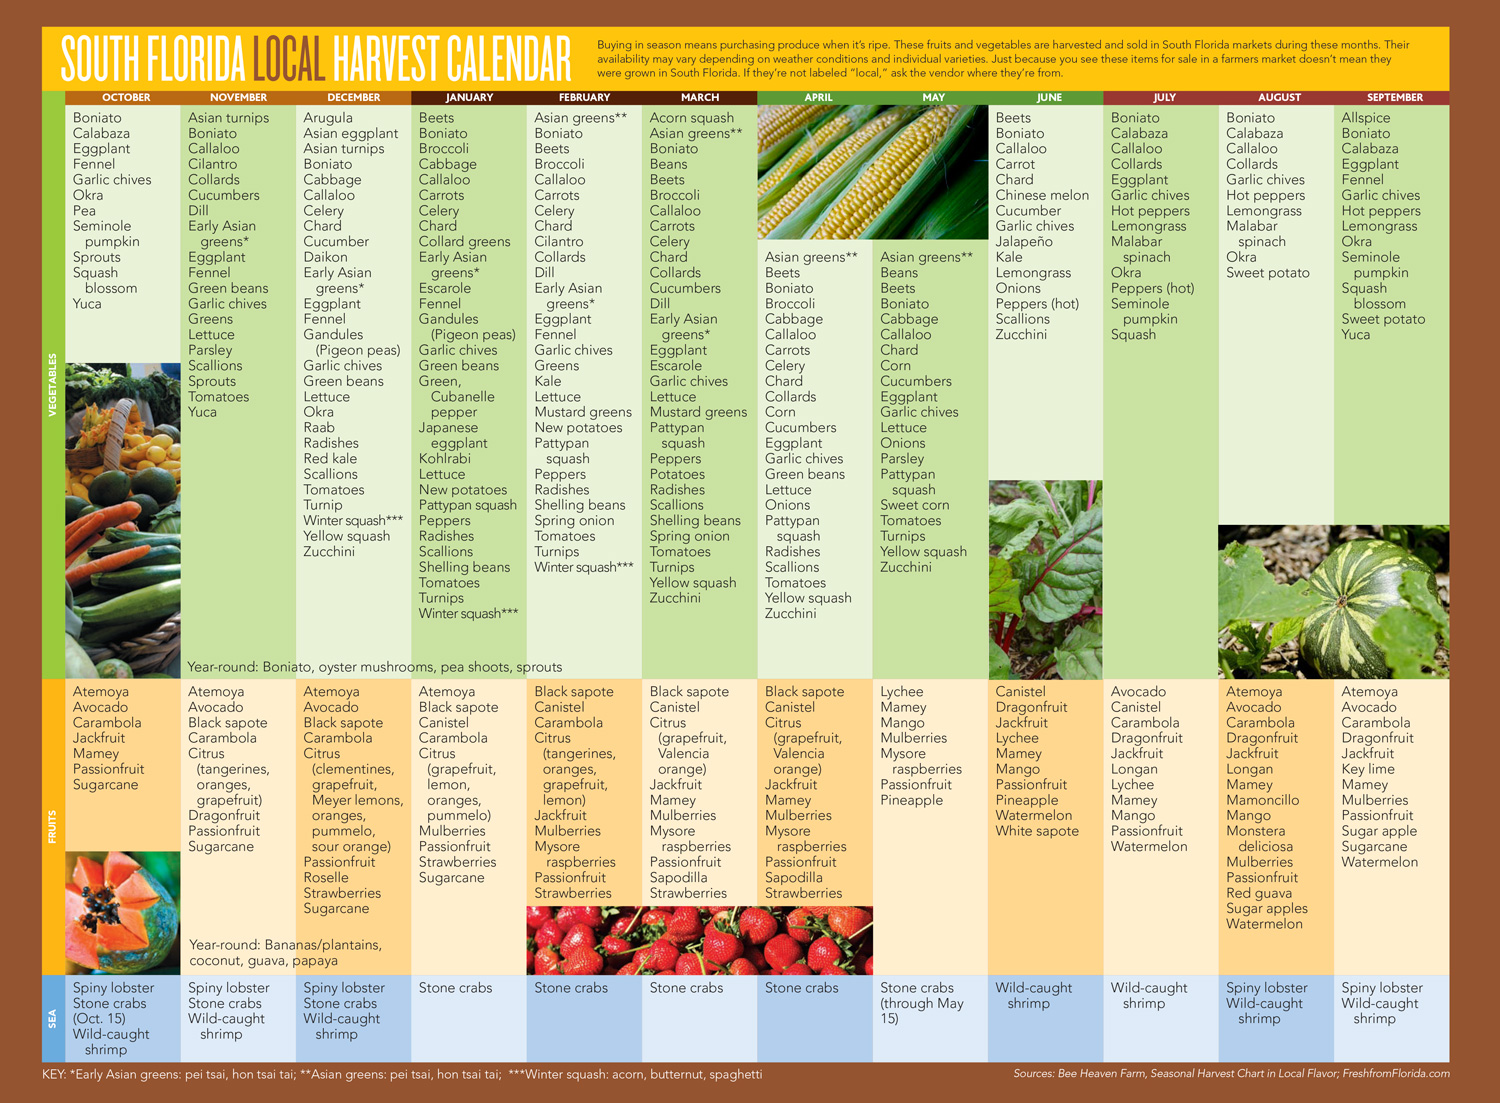 South Florida Local Harvest Calendar